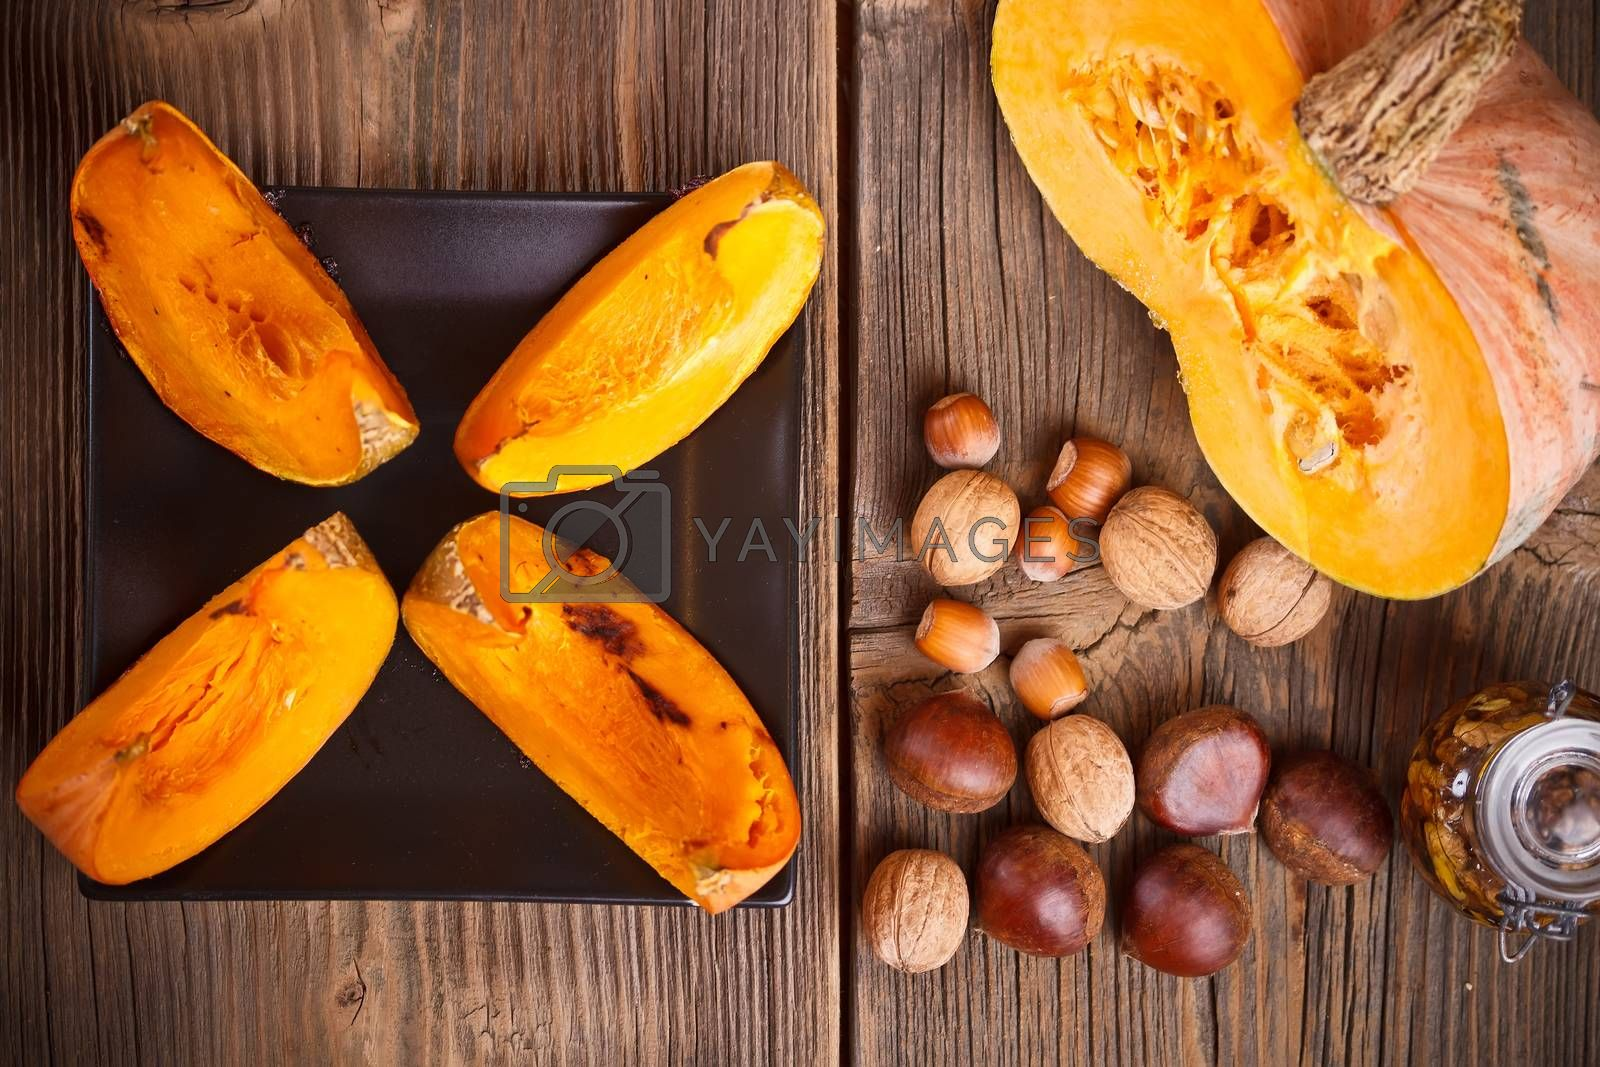 Autumn vegetables and fruits on wooden background